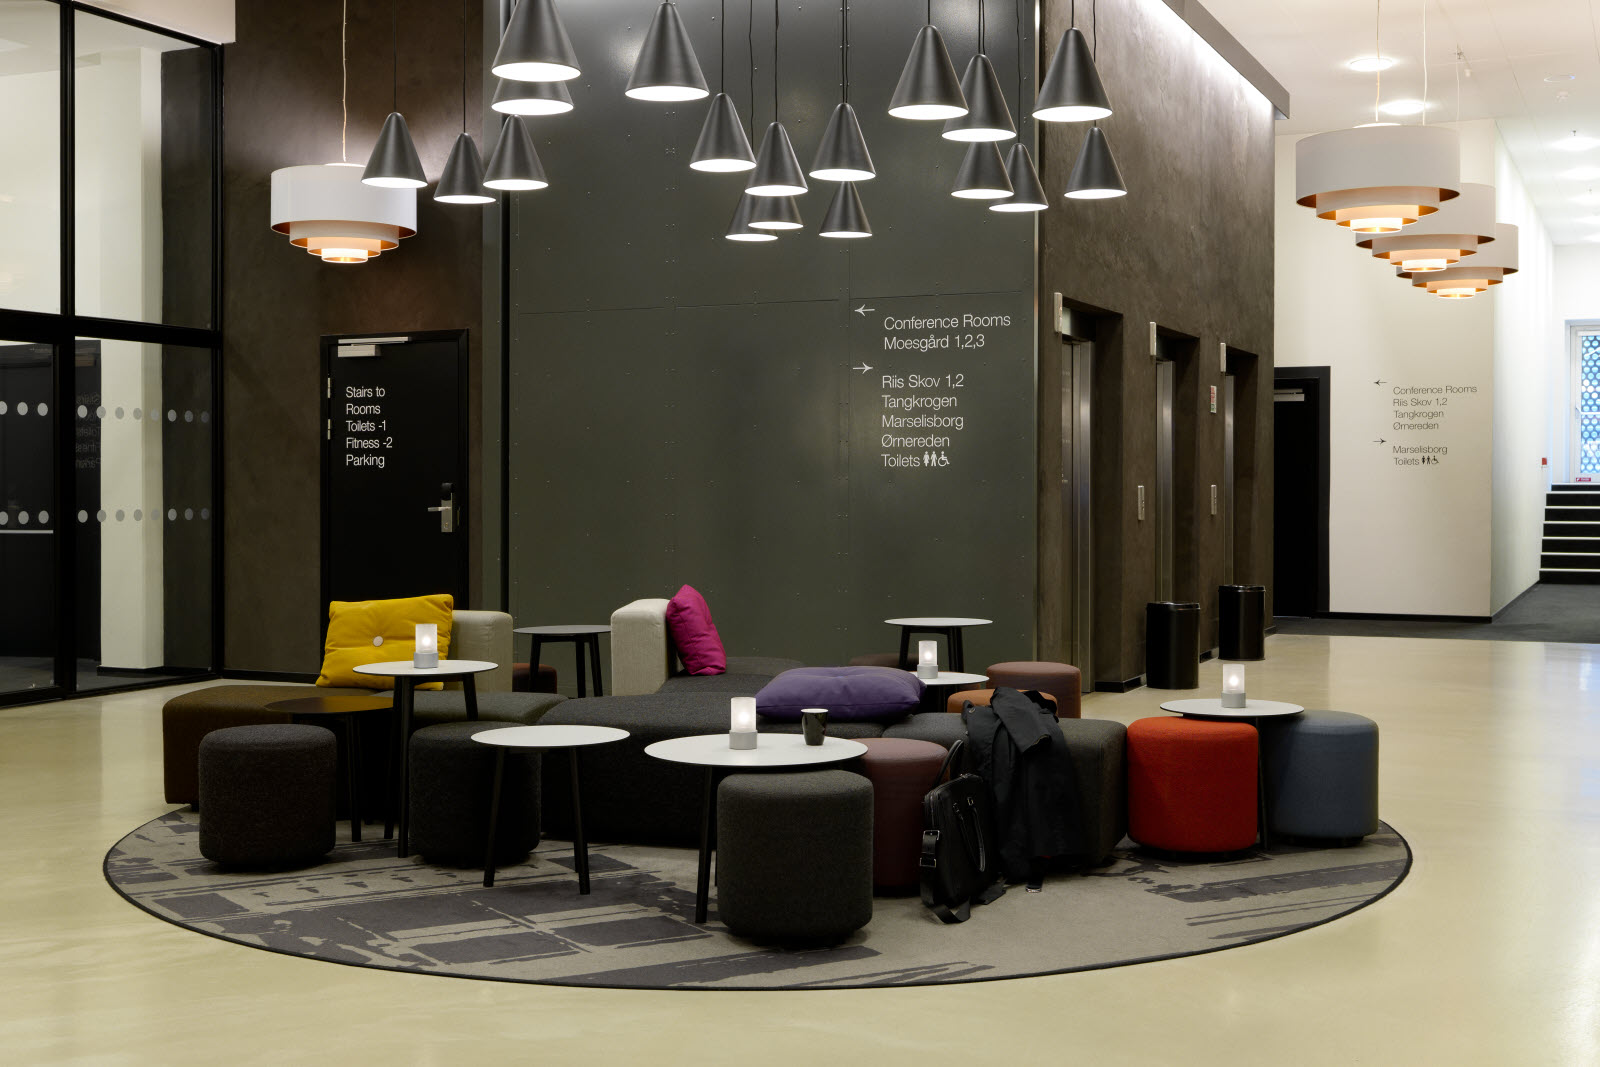 scandic-aarhuscity-conference-meetingarea-2.jpg